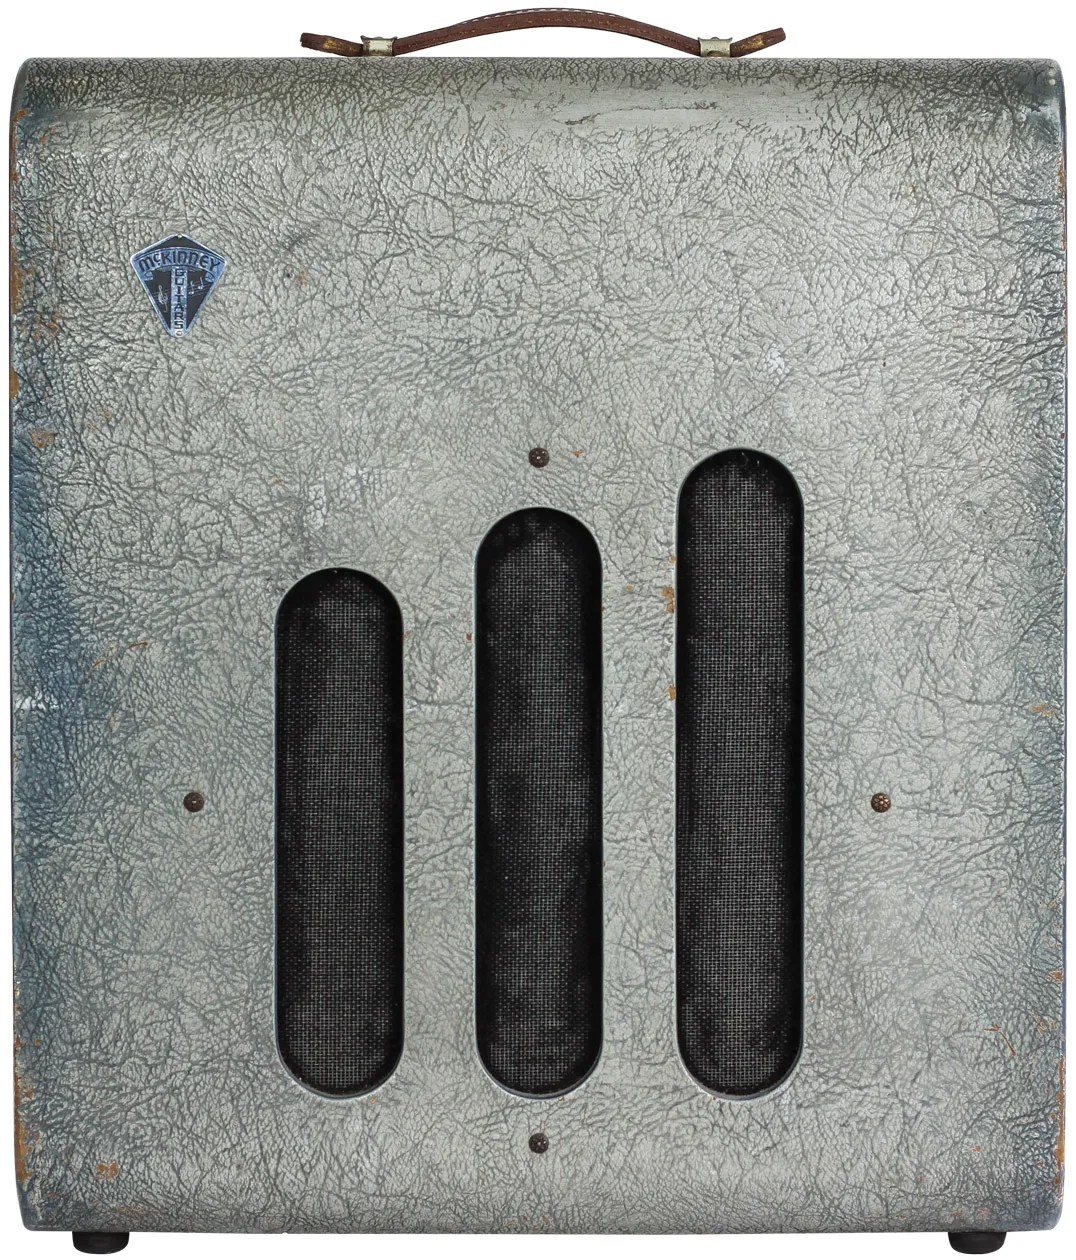 hight resolution of on the valco made mckinney 1260 the separate volume controls for the microphone and instrument channels reveal the amp s original all in one design as a